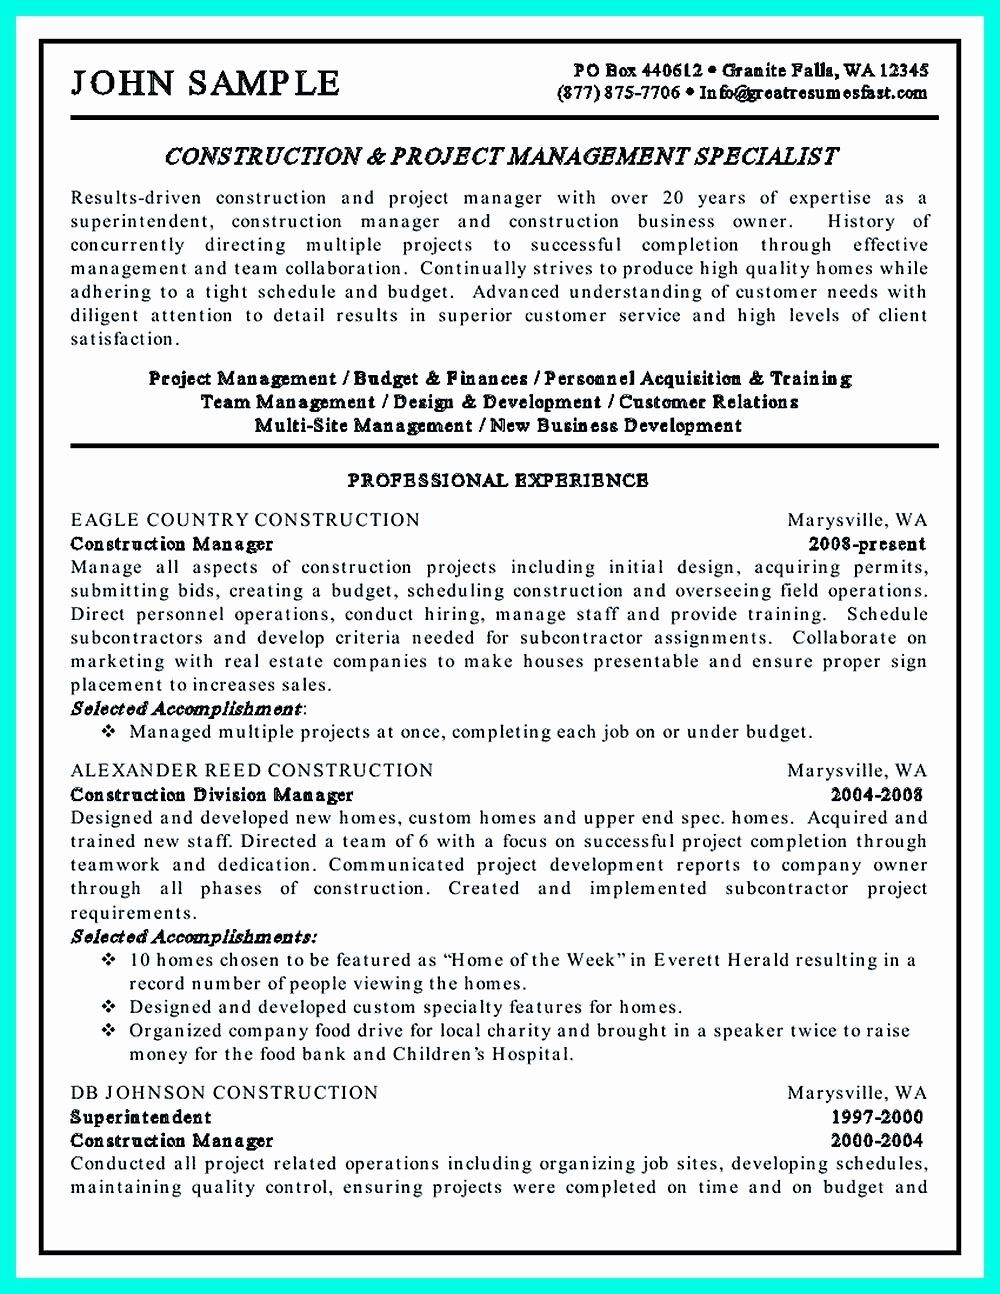 project management job description resume beautiful construction manager for experienced Resume Construction Project Manager Job Description Resume